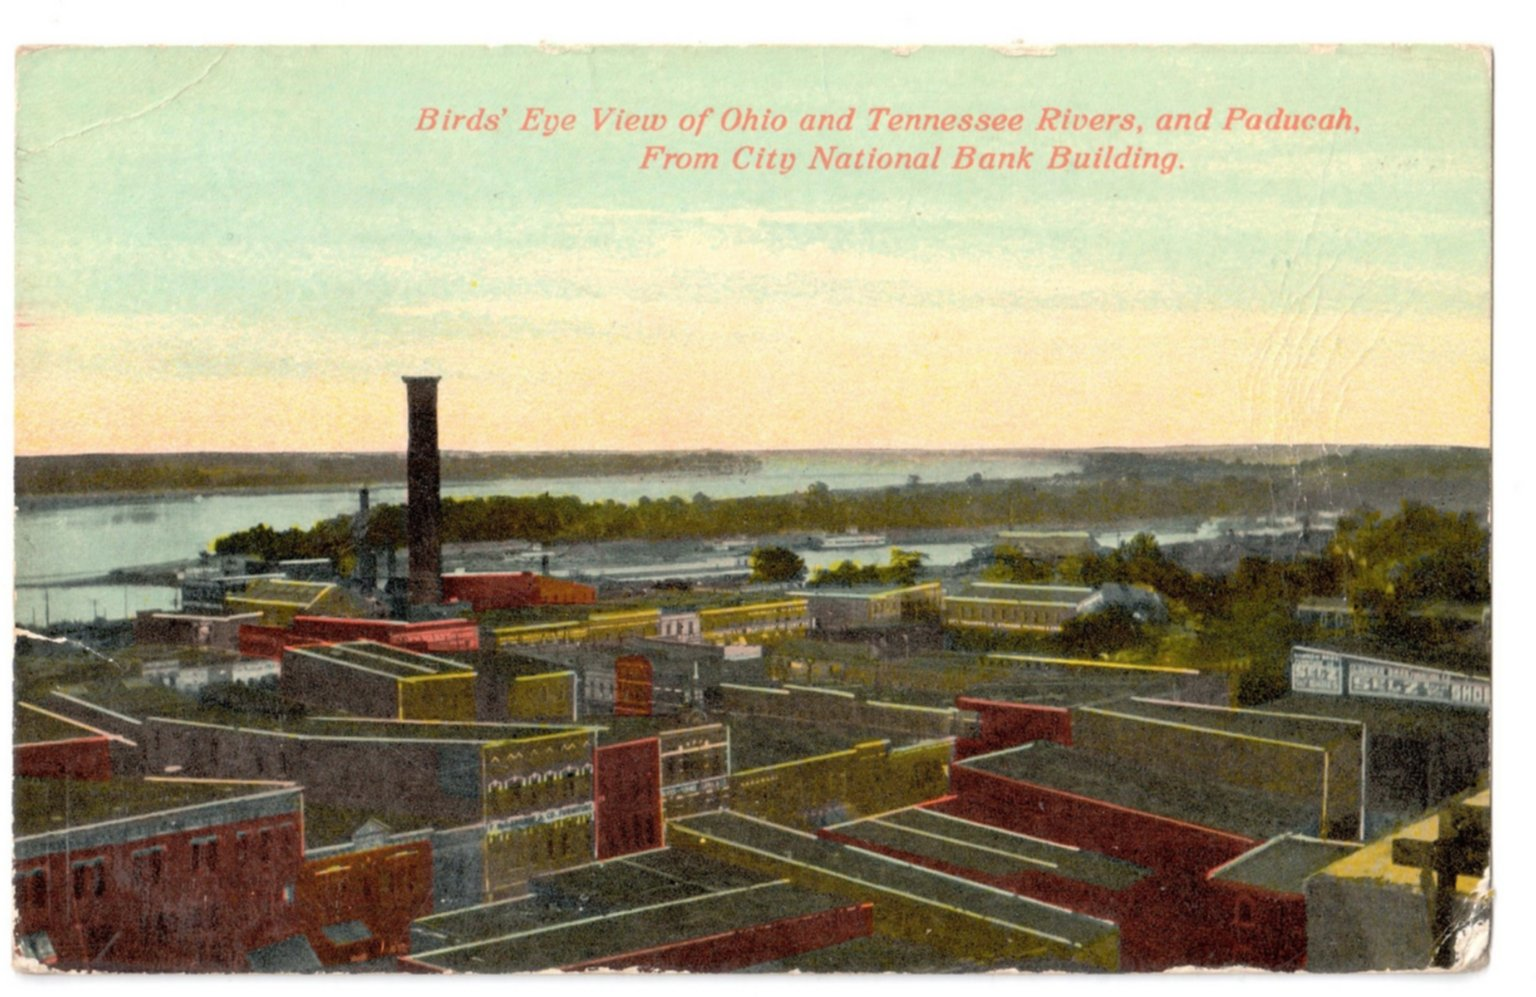 Bird's Eye View of Ohio and Tennesee Rivers, and Paducah. From City National Bank Building